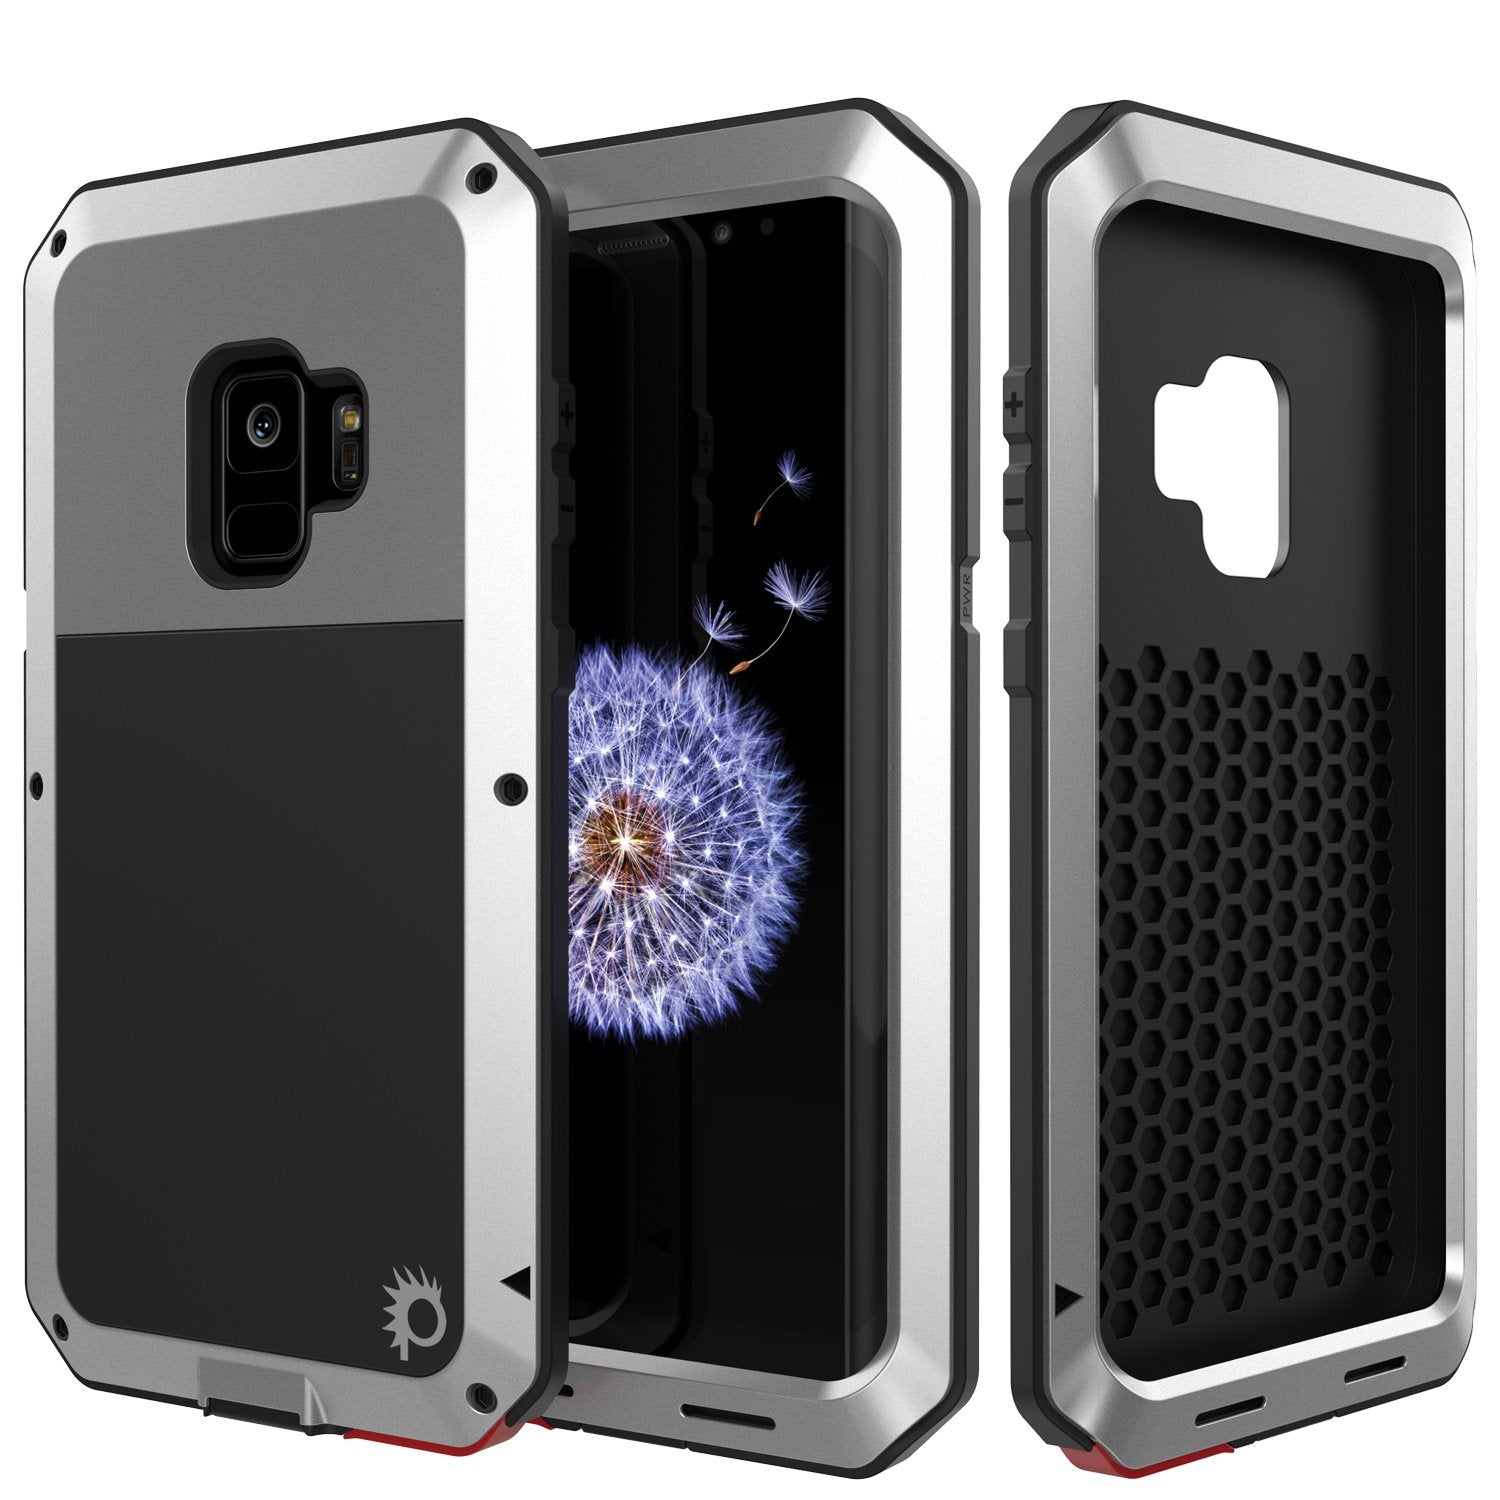 Galaxy S9 Metal Case, Heavy Duty Military Grade Rugged case [Silver]